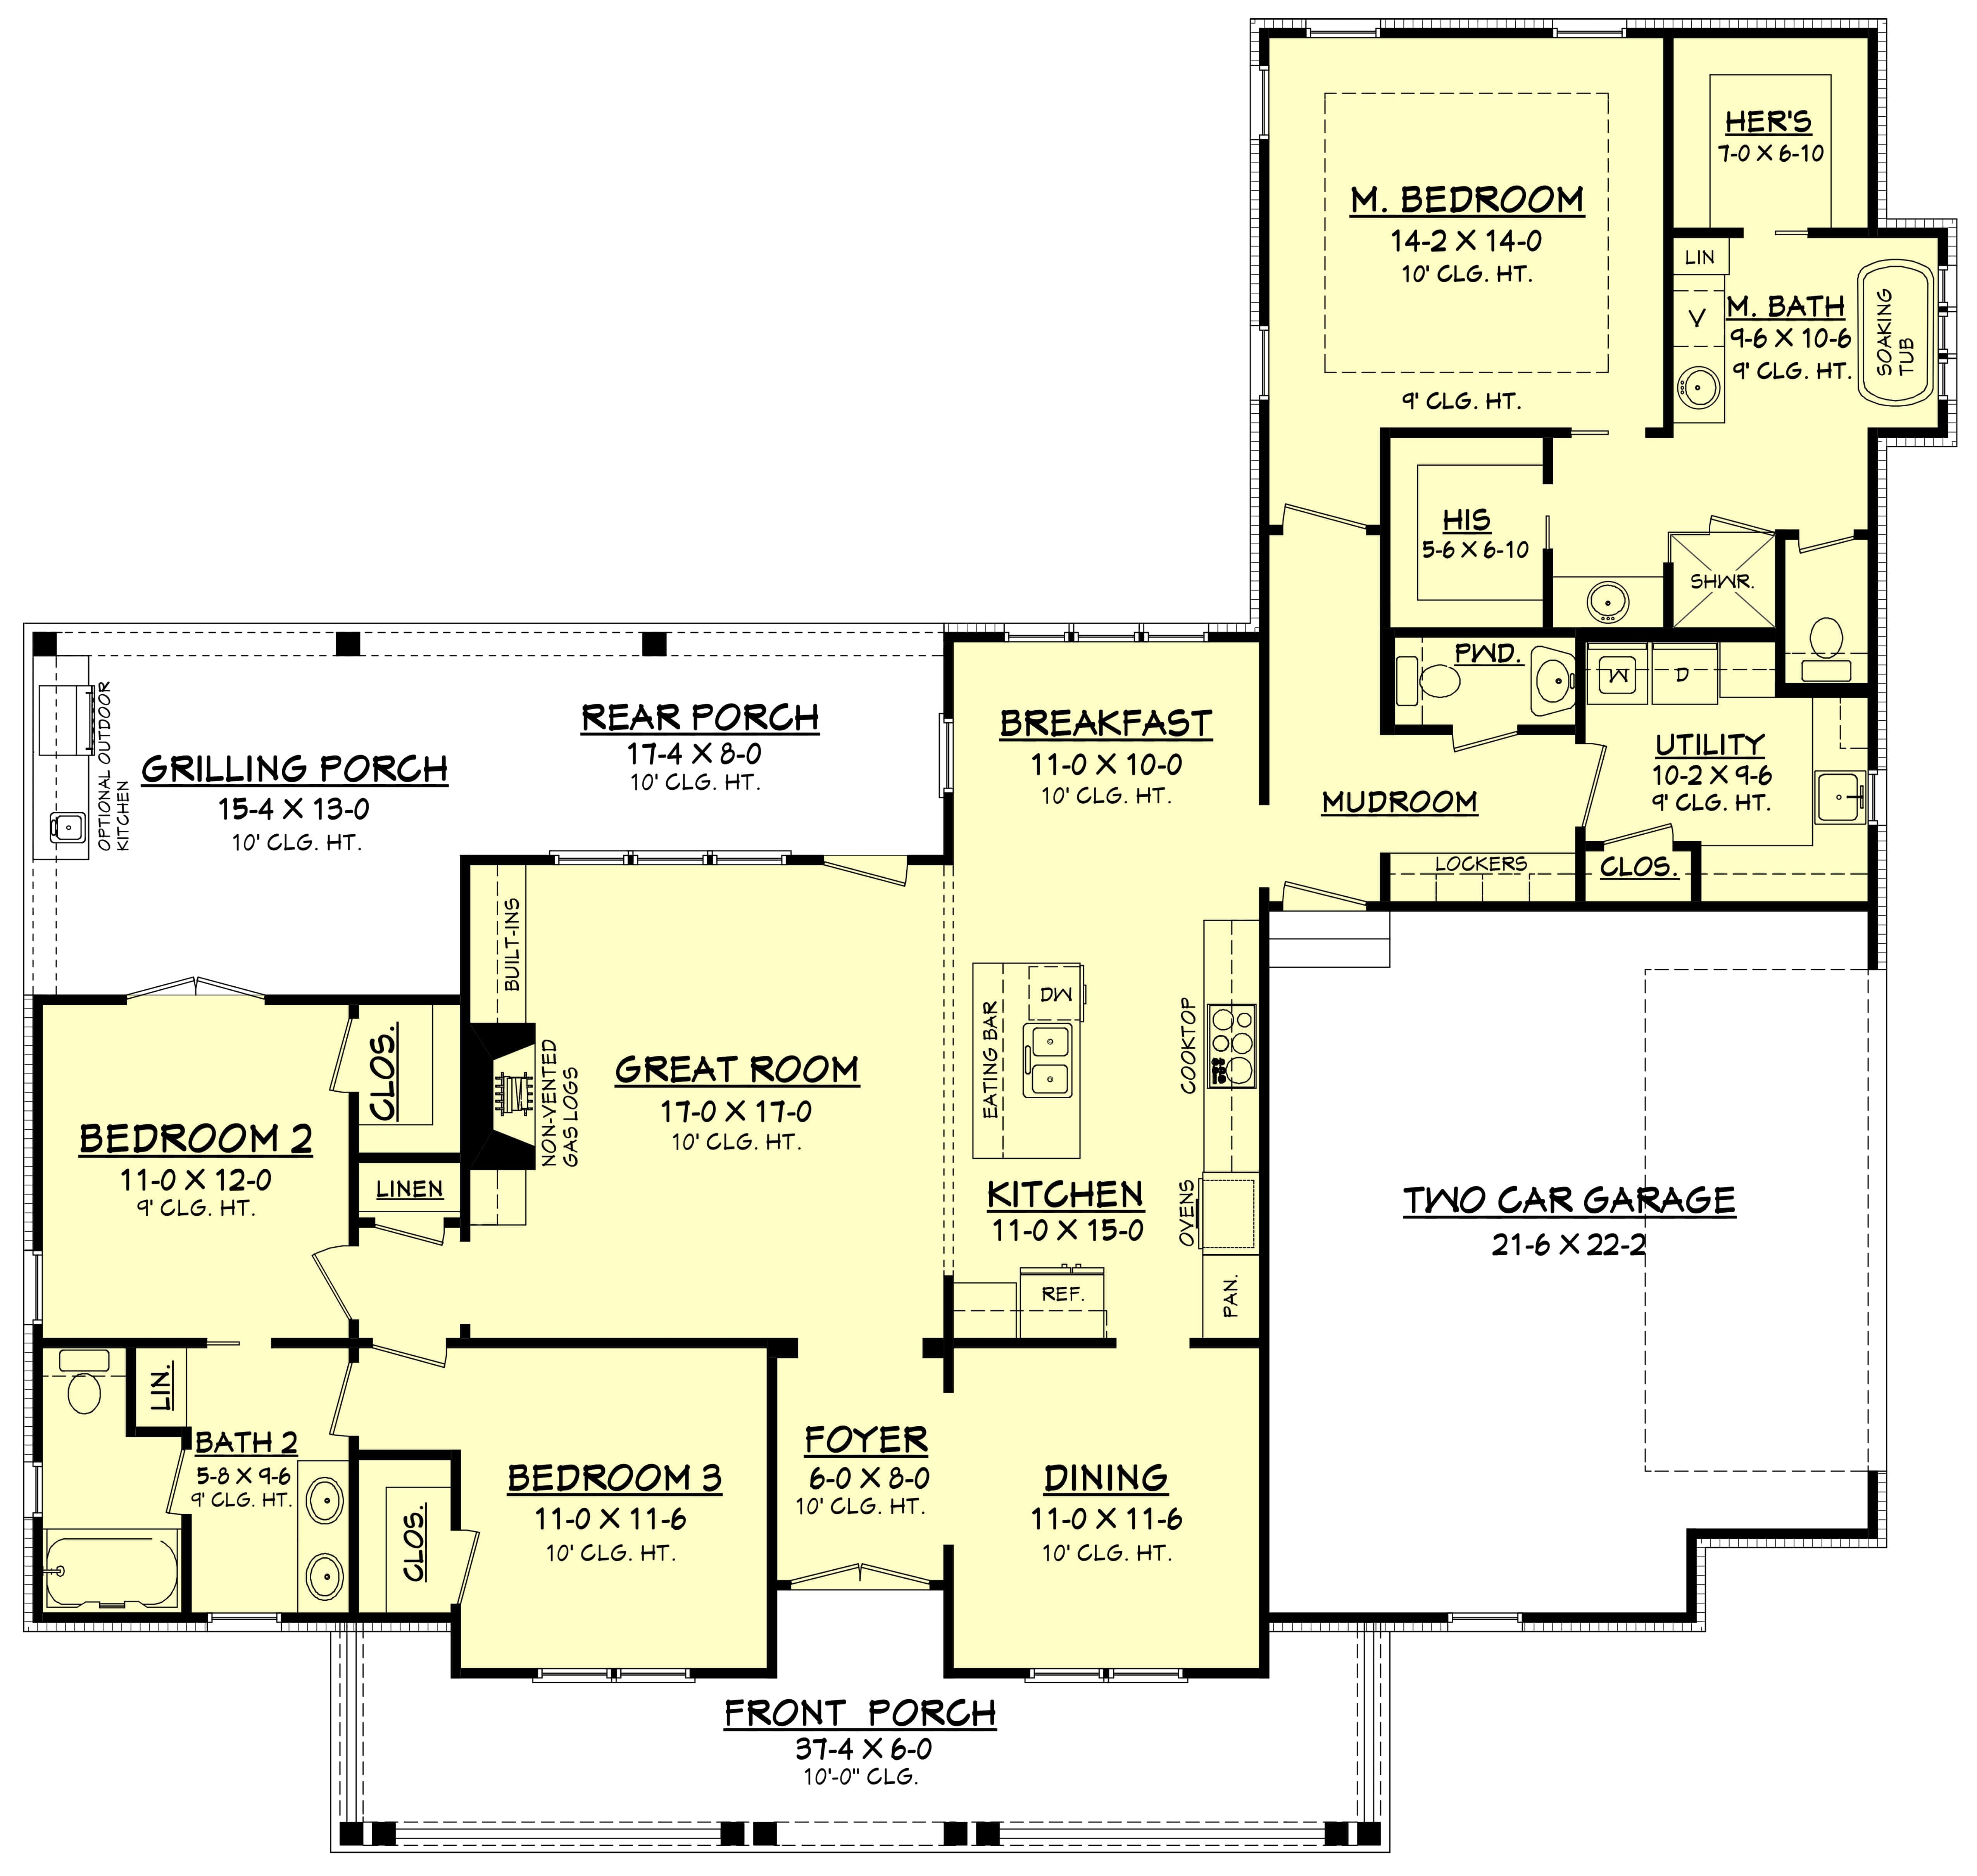 Plan1421183Image_5_1_2017_1511_6  Bedroom House Plans Master On First on 6 bedroom house plans blueprints, 6 bedroom craftsman house plans, 6 bedroom single story ranch house plans, 3 bedroom house plans master on first,